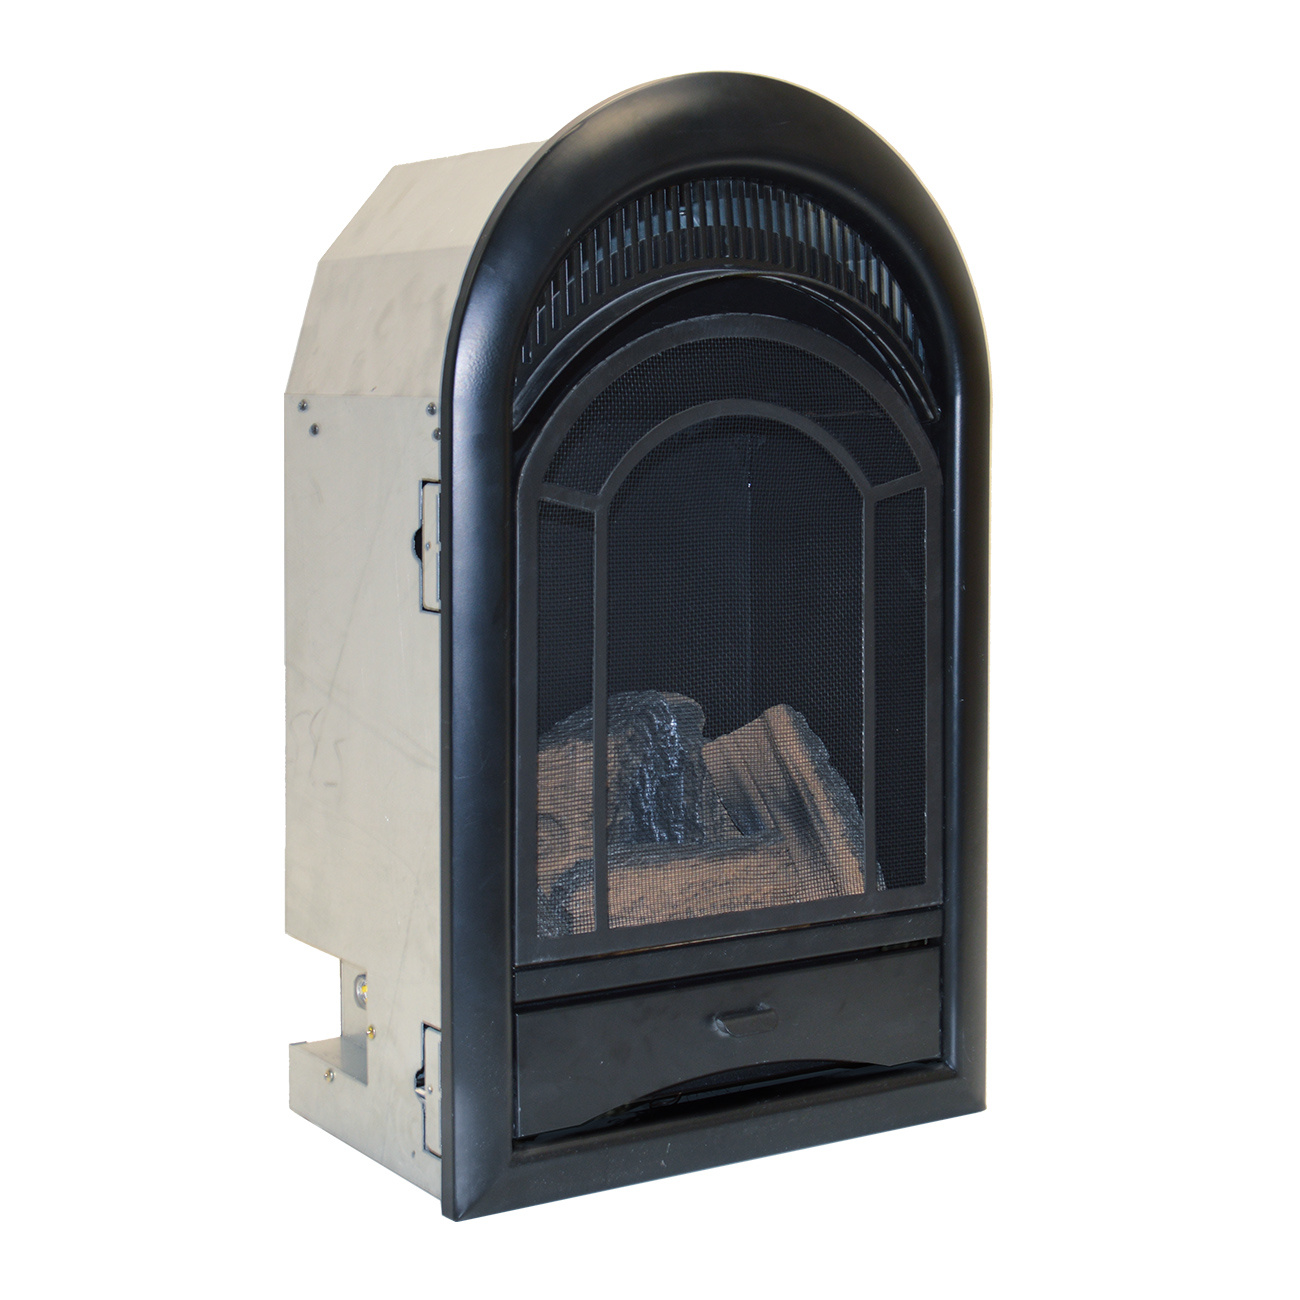 Ventless fireplace insert thermostat control arched door 15000 btu procom pcs150t procom heating teraionfo